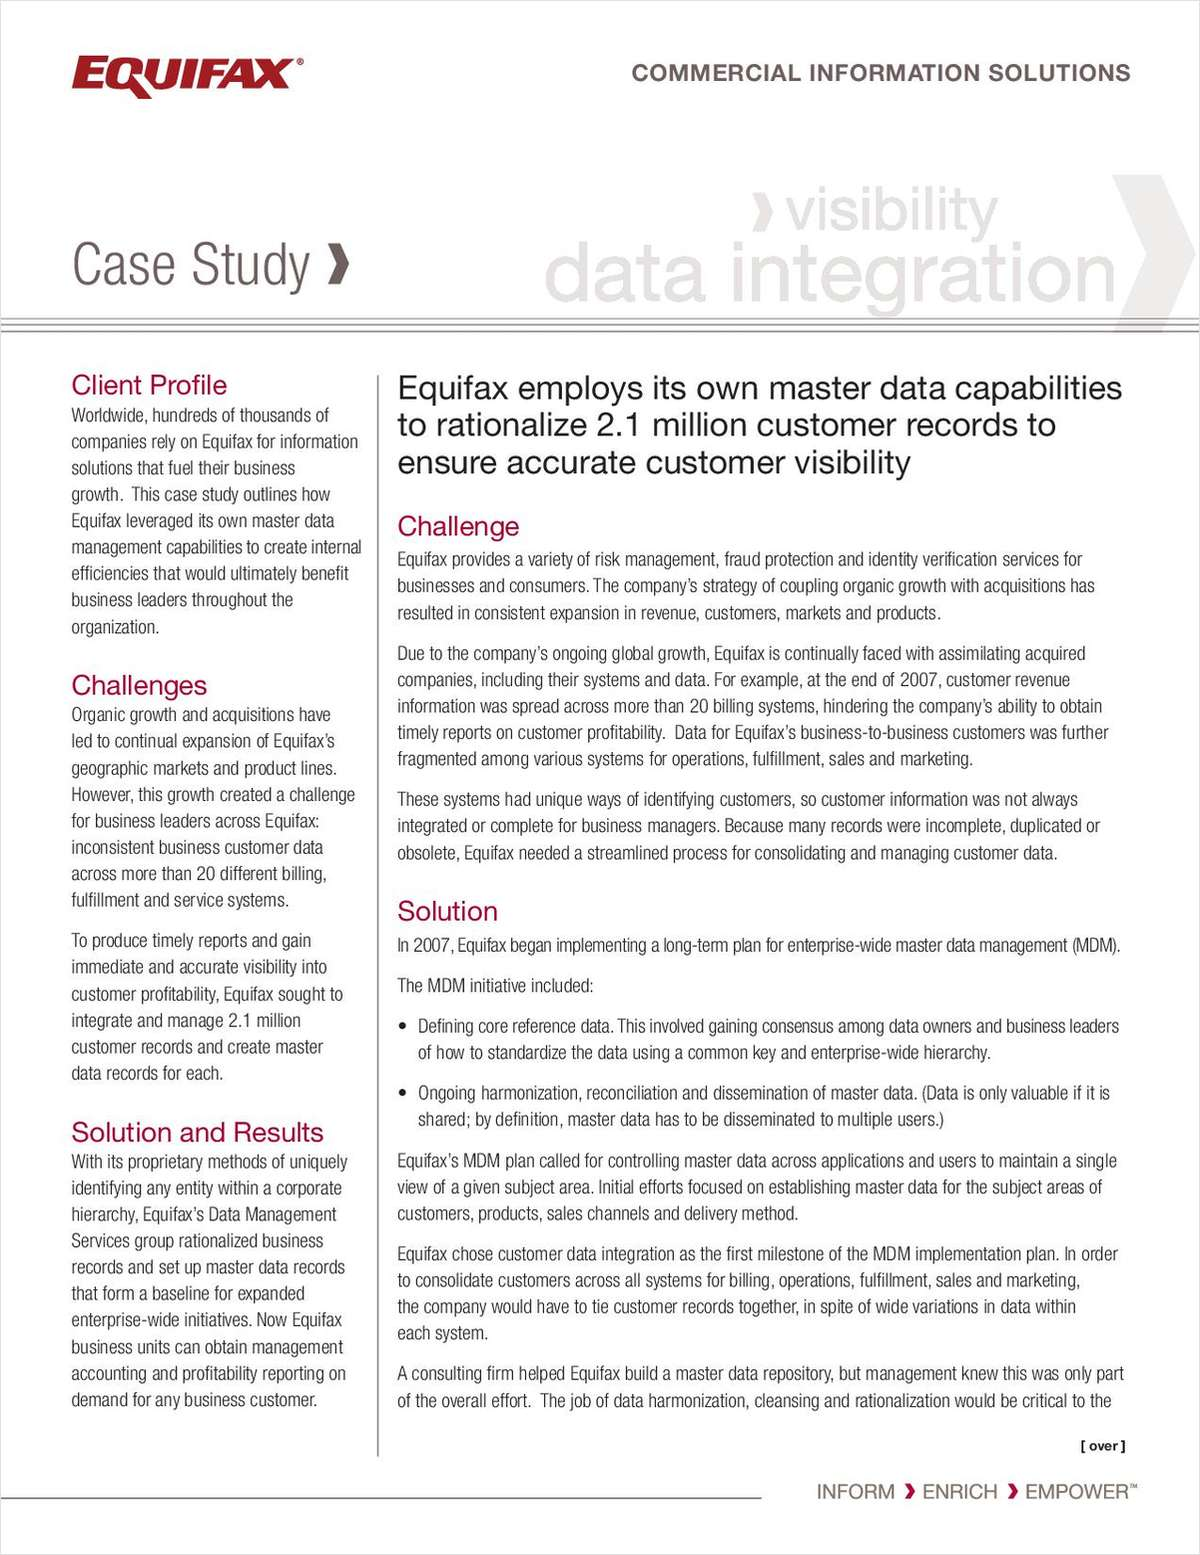 Equifax Master Data Management Case Study